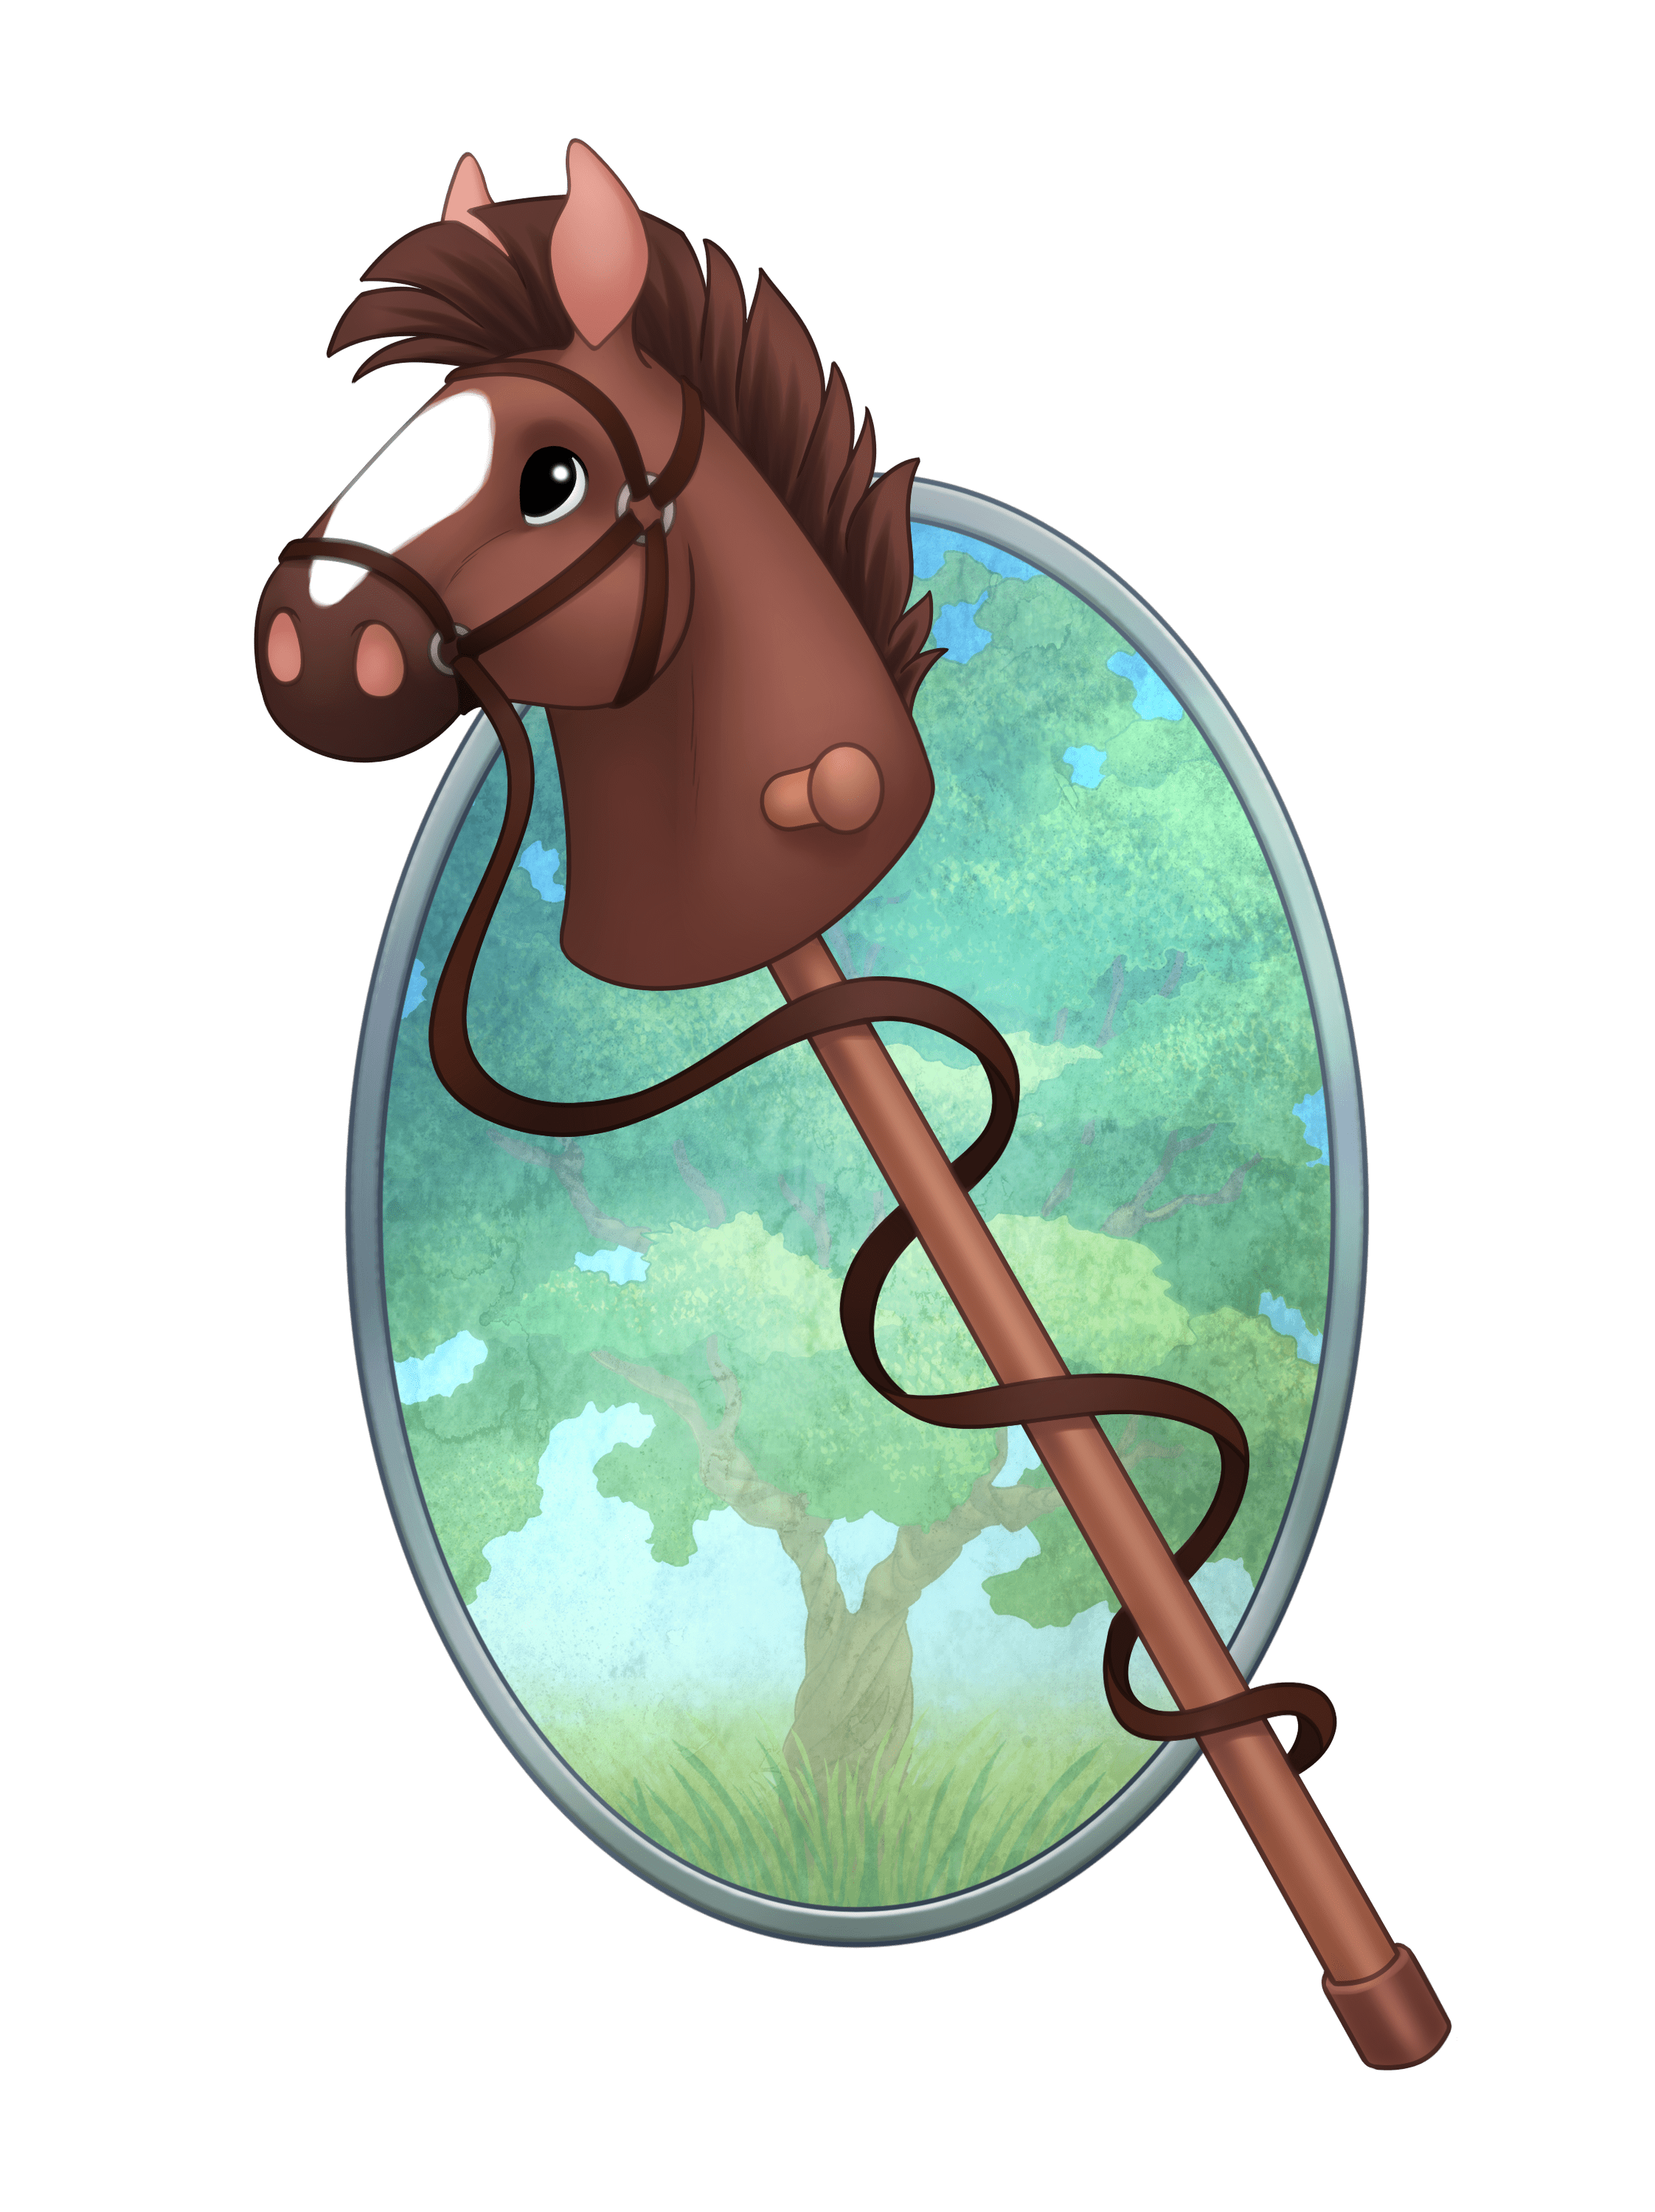 Showering clipart inclement weather. Hobby horse shows white